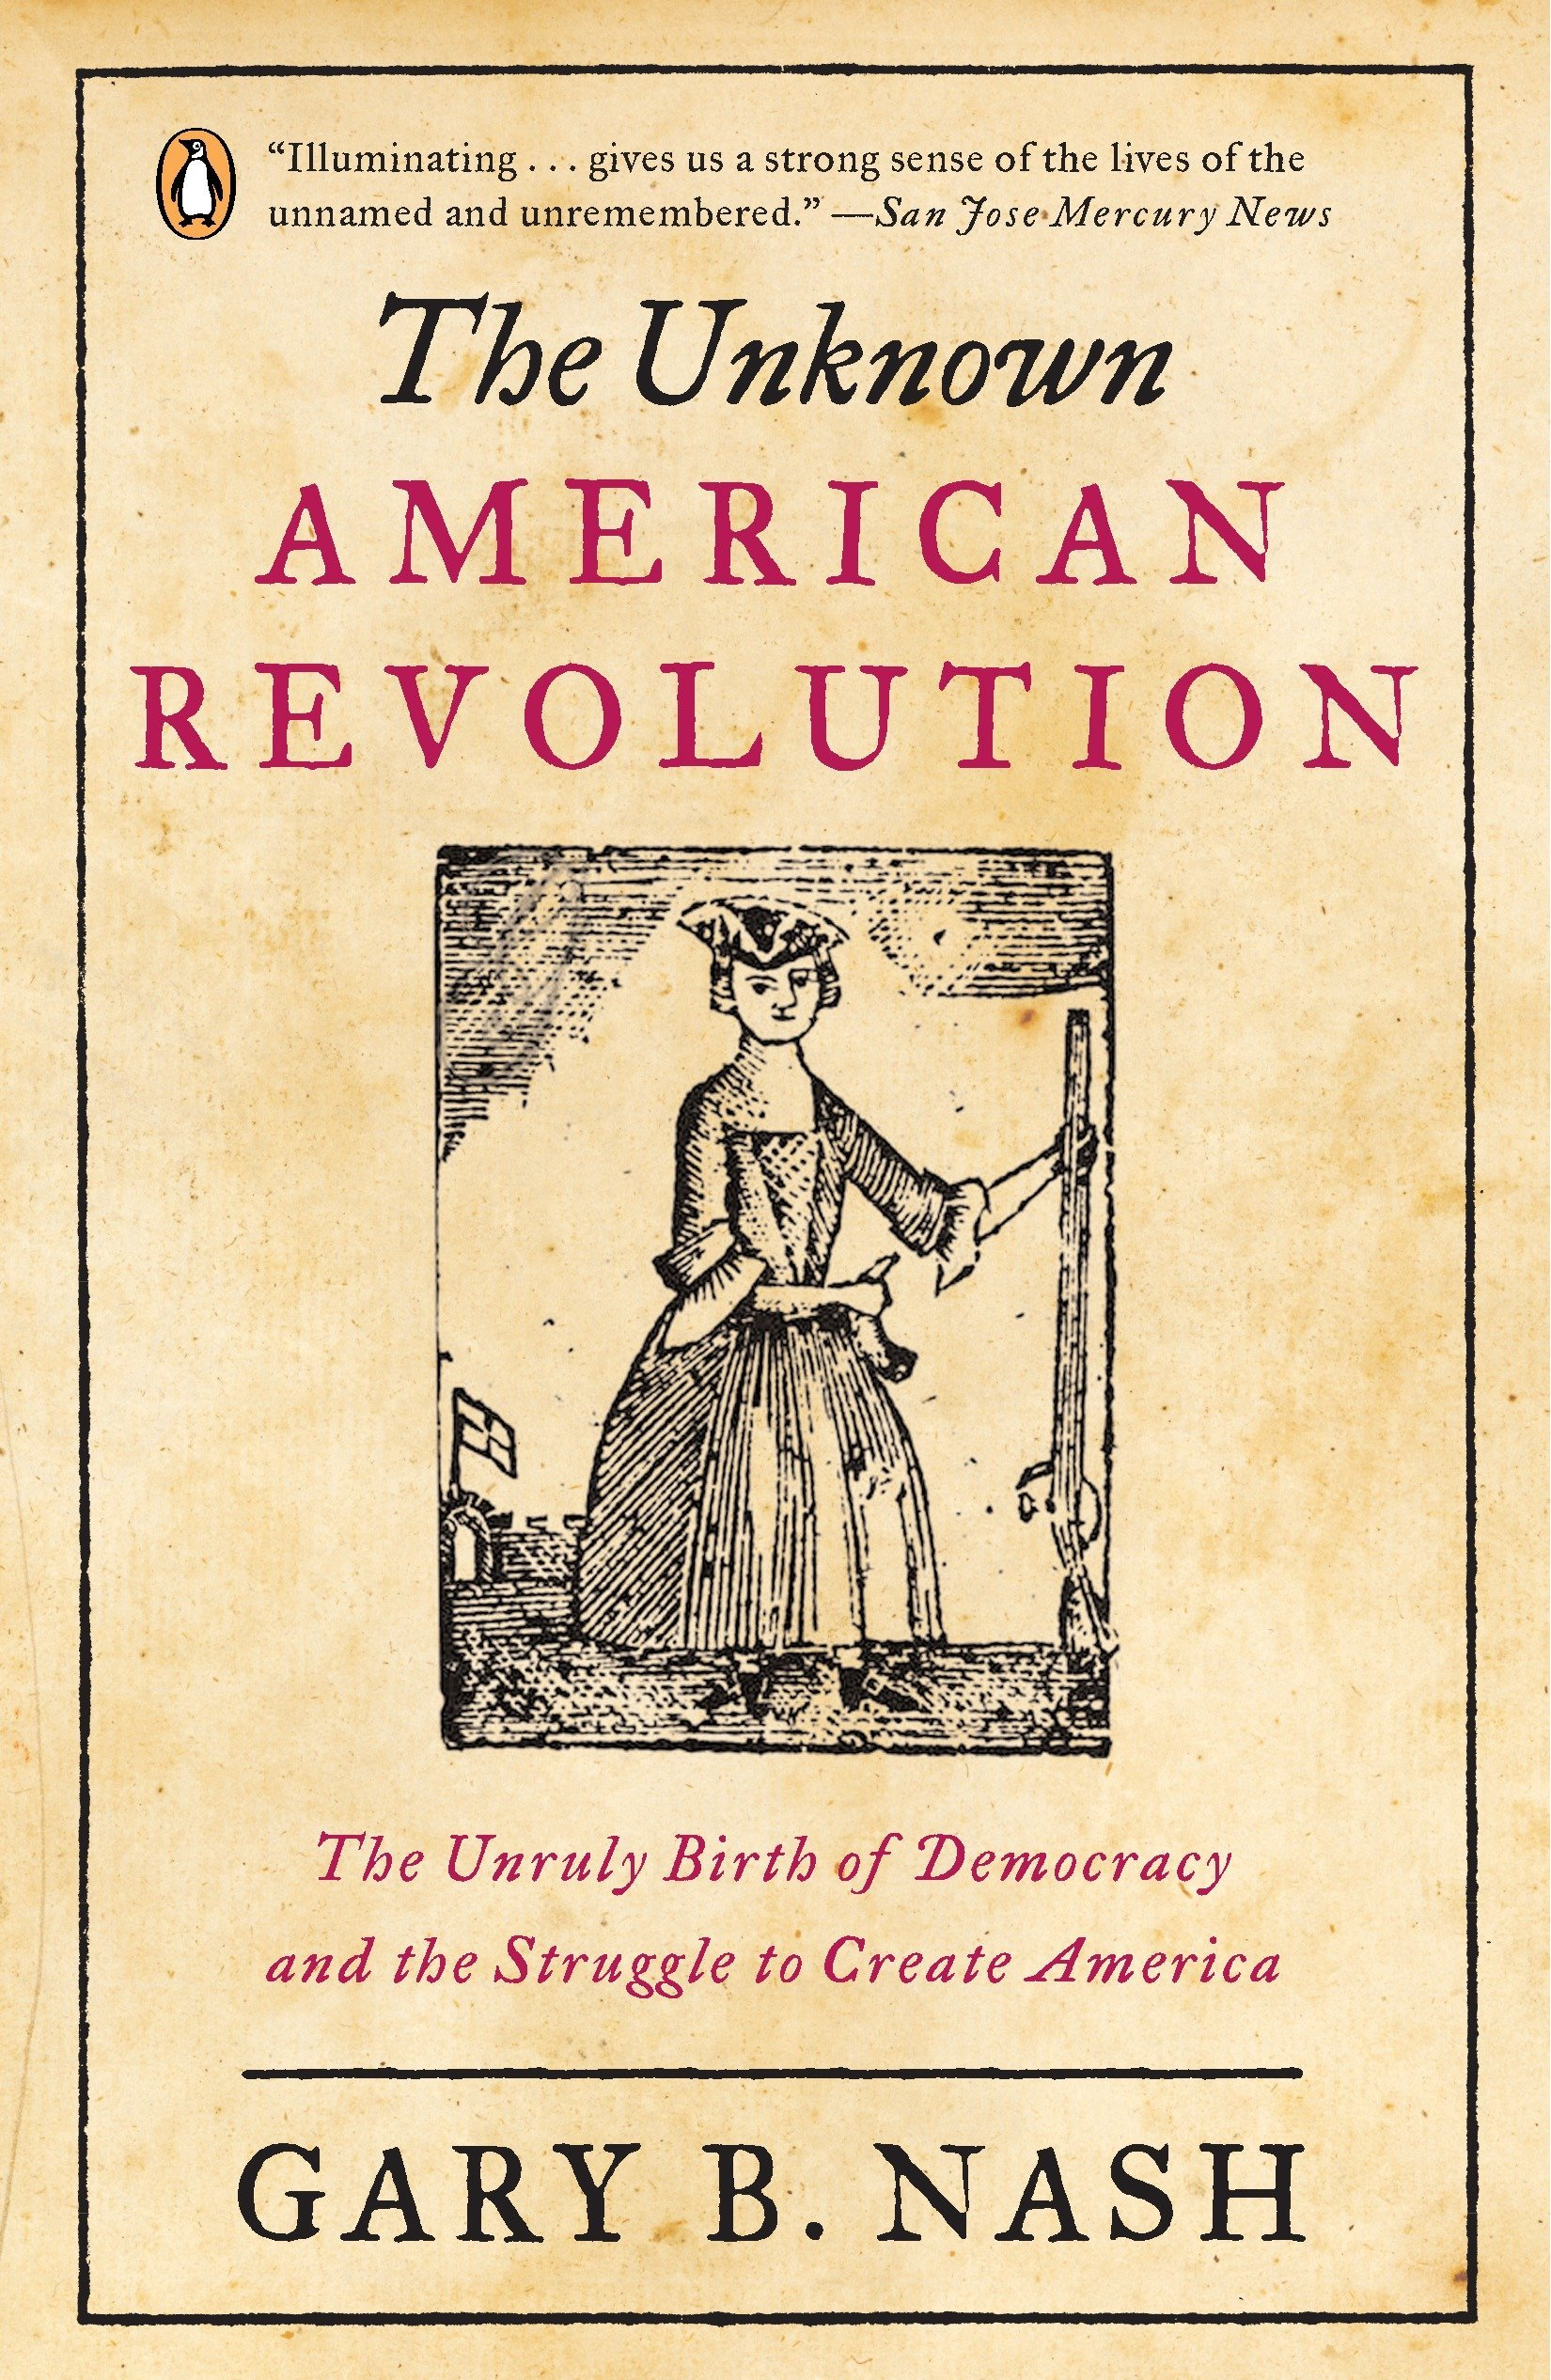 The Unknown American Revolution: The Unruly Birth of Democracy and the  Struggle to Create America: Gary B. Nash: 9780143037200: Amazon.com: Books